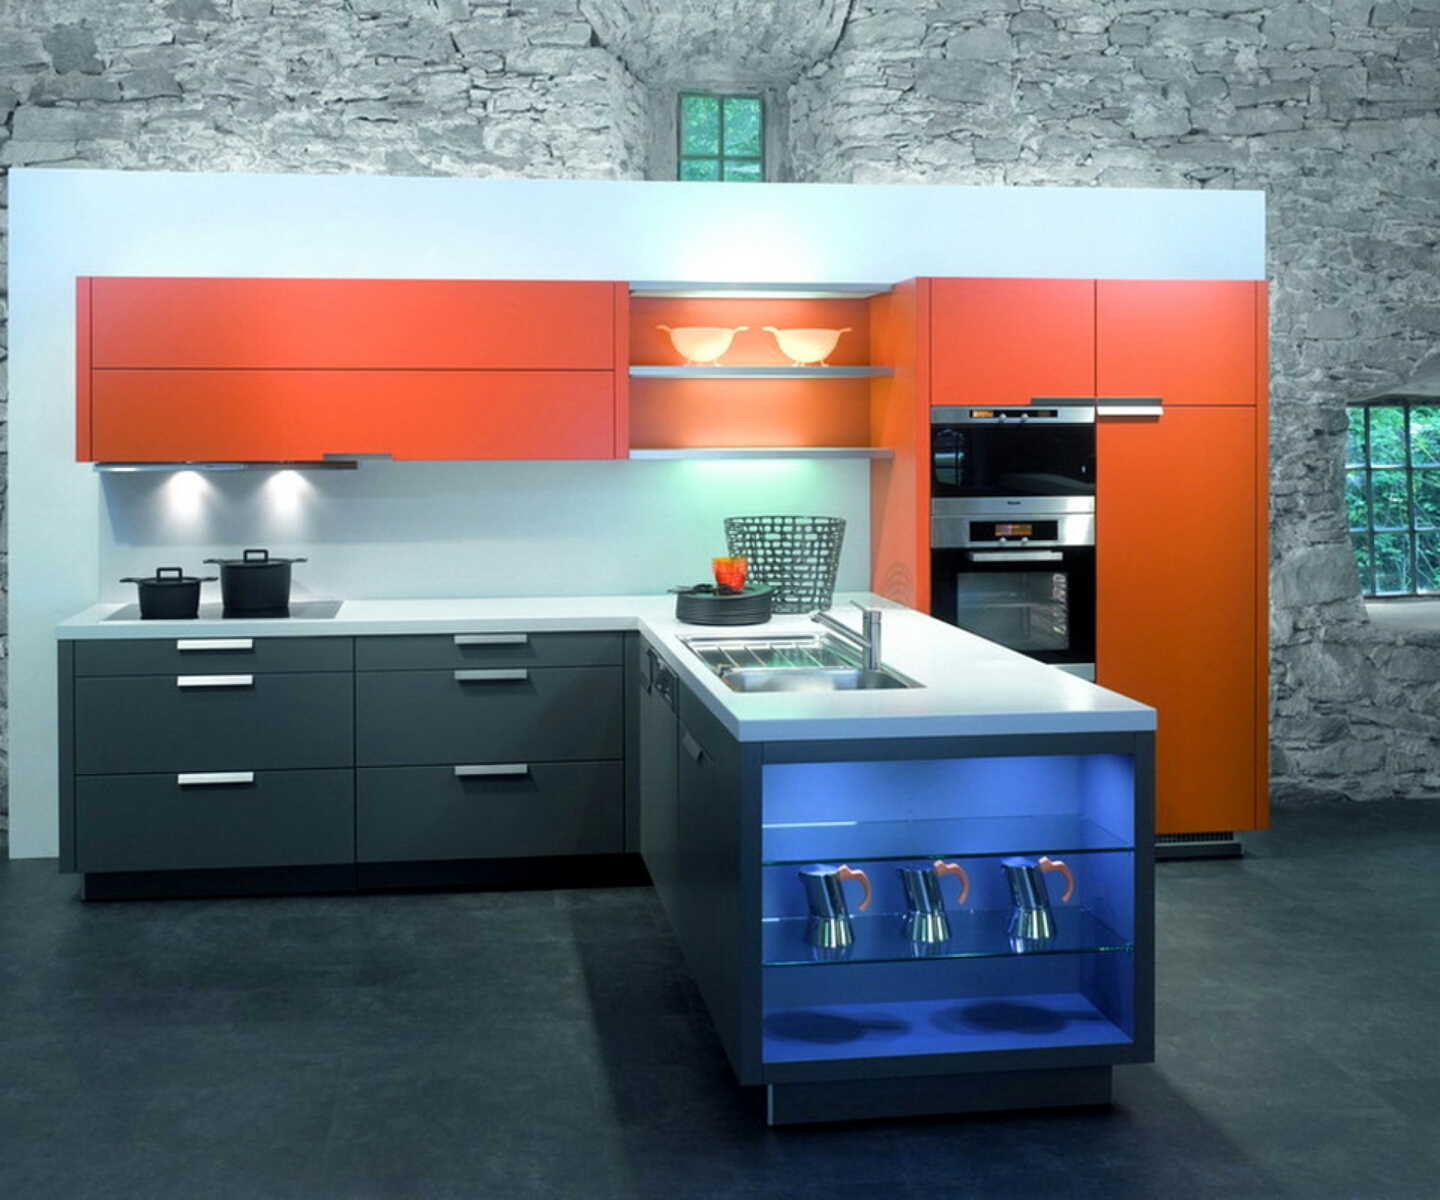 New Home Designs Latest Ultra Modern Kitchen Designs Ideas: Home Priority: Present The Unconventional Kitchen